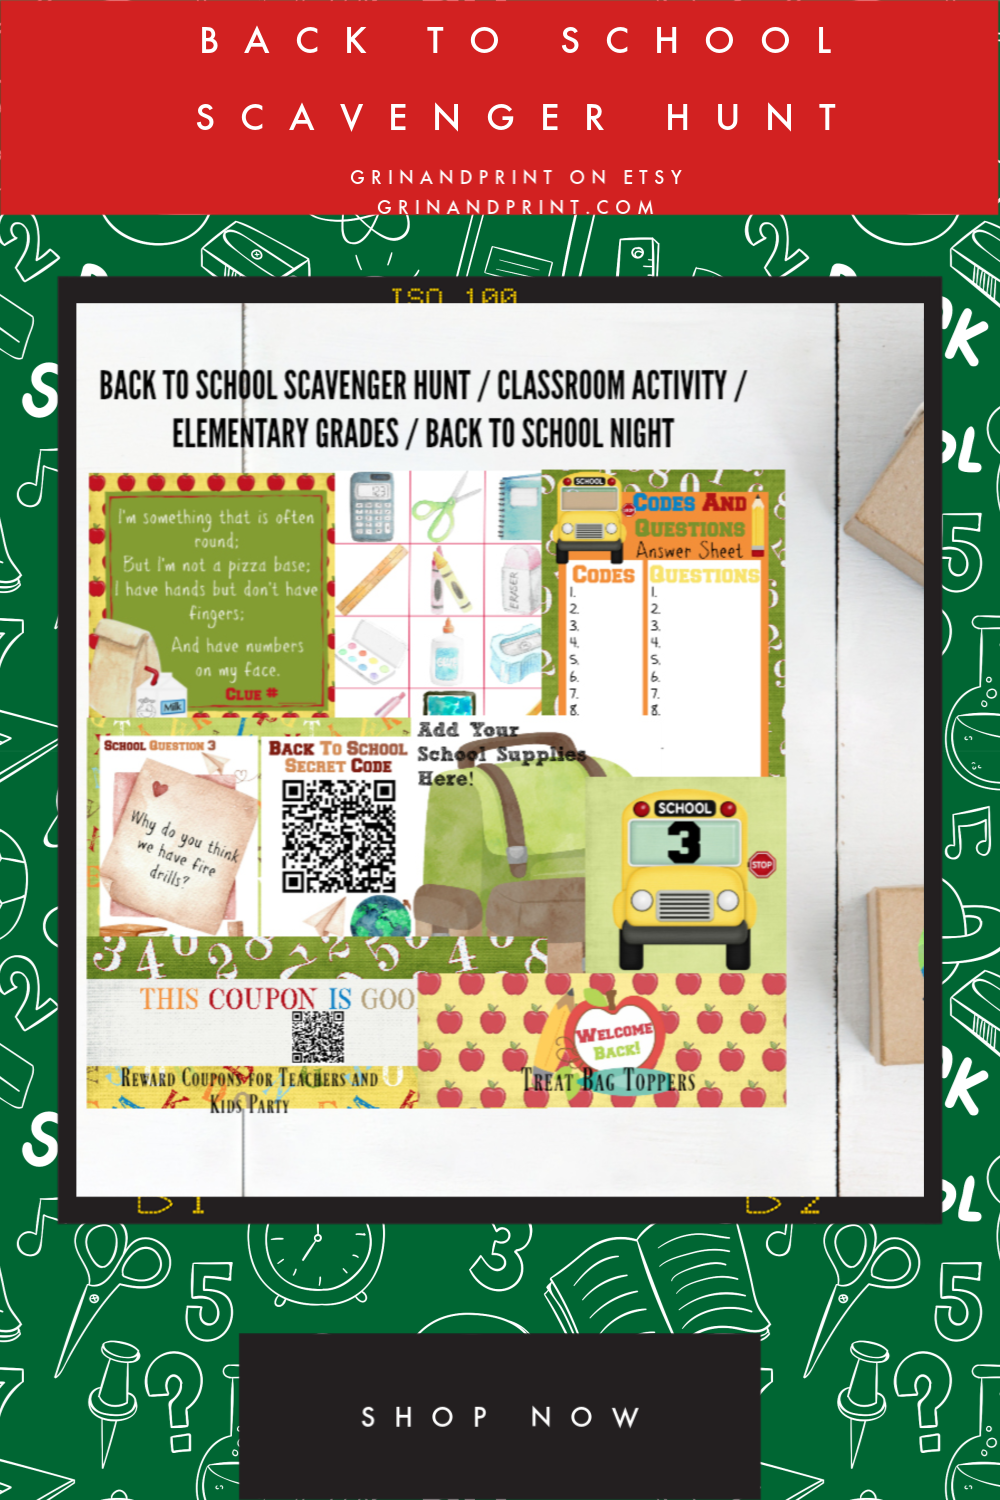 Back to School Scavenger Hunt / Back to School Printable / Back to School Ideas / Back to School Activity / Classroom Activity / Teacher